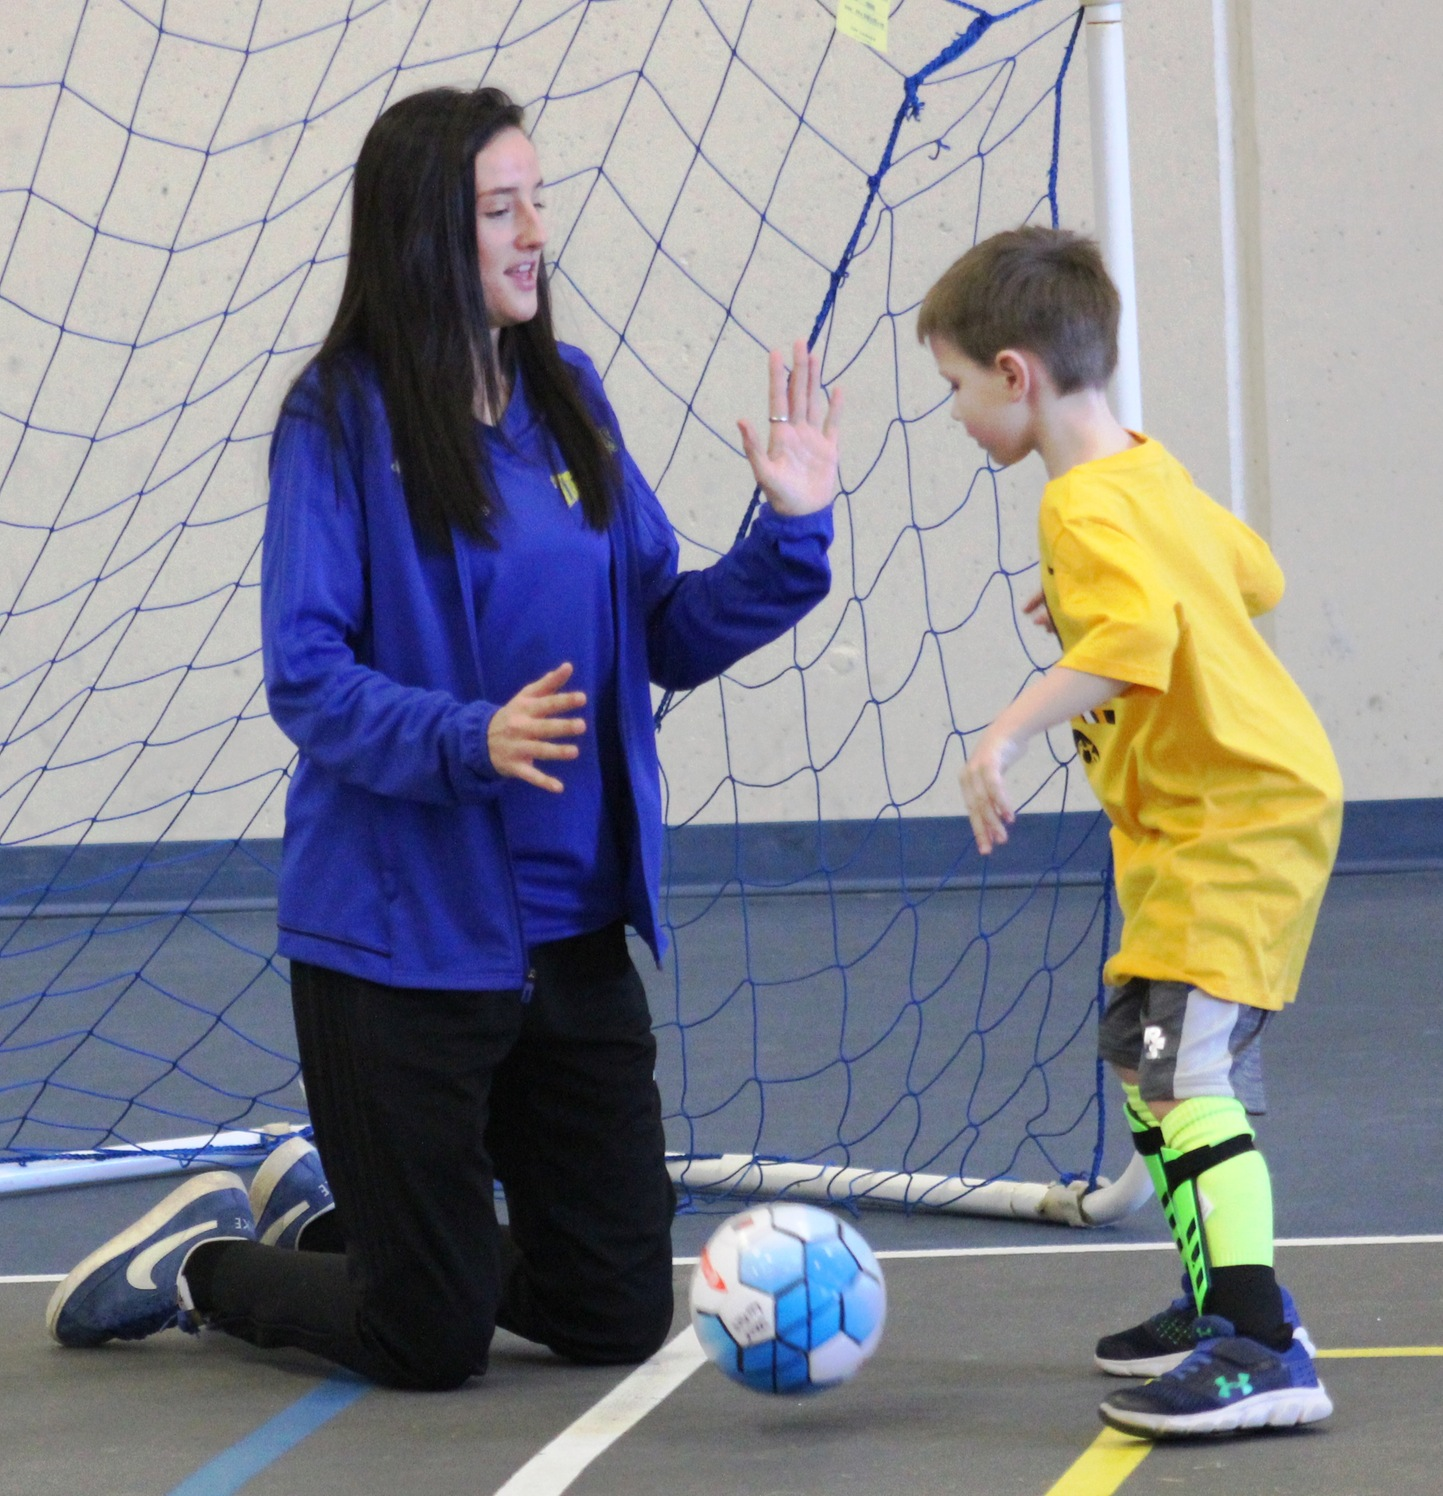 NIACC women's soccer coach Daisy Simms at youth soccer camp Tuesday morning in the NIACC recreation center.